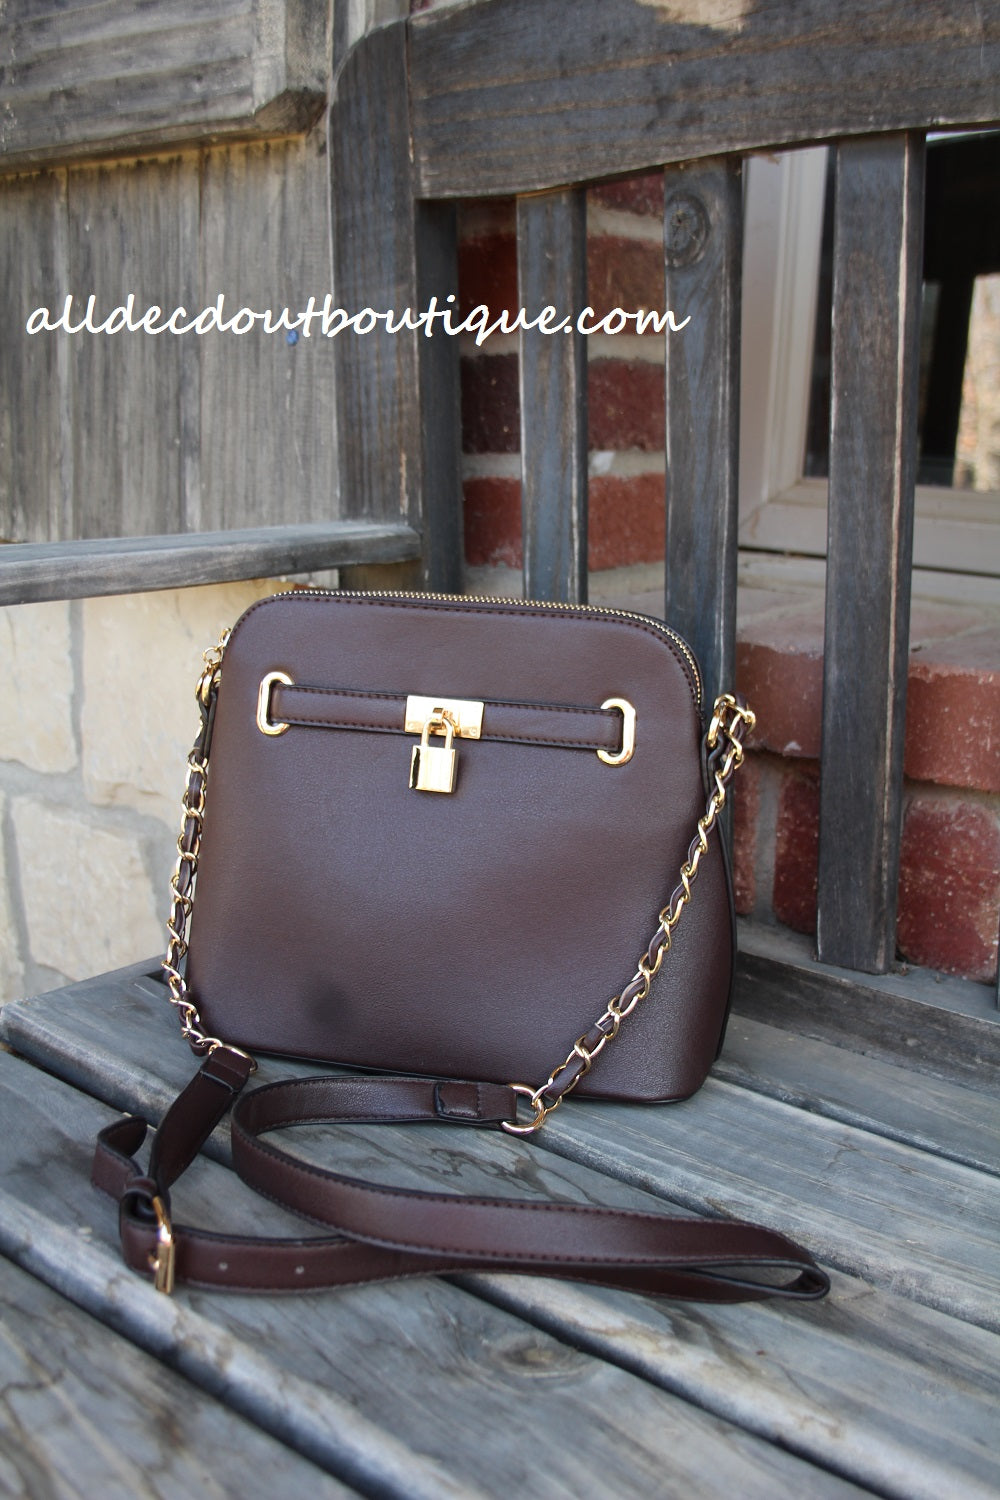 ADO | Classic Messenger Purse Brown - All Decd Out